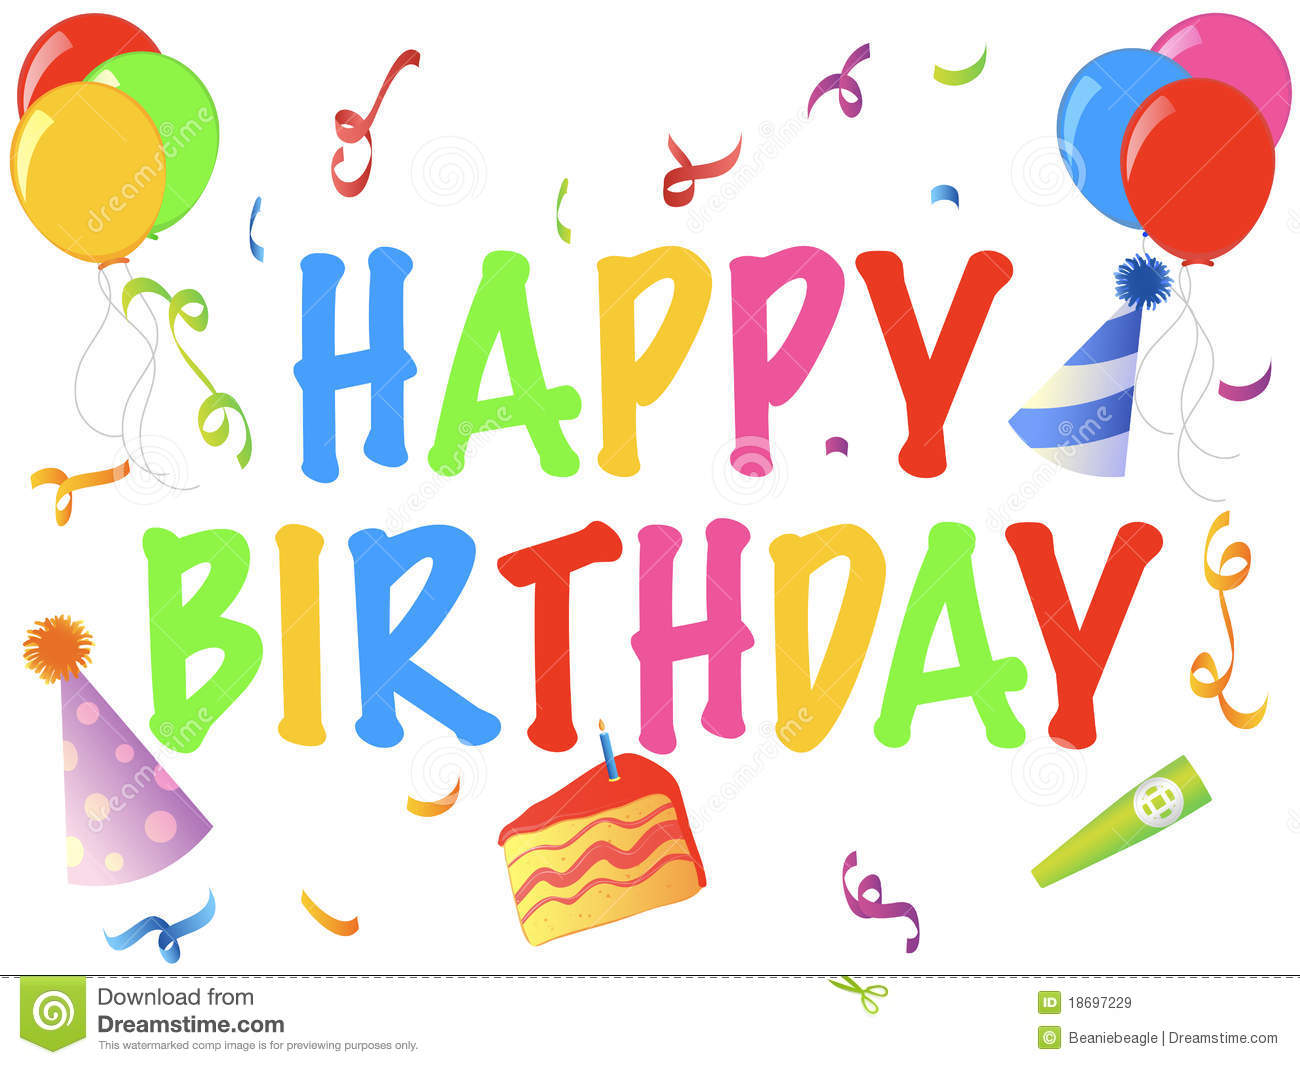 Royalty free stock photo download happy birthday banner